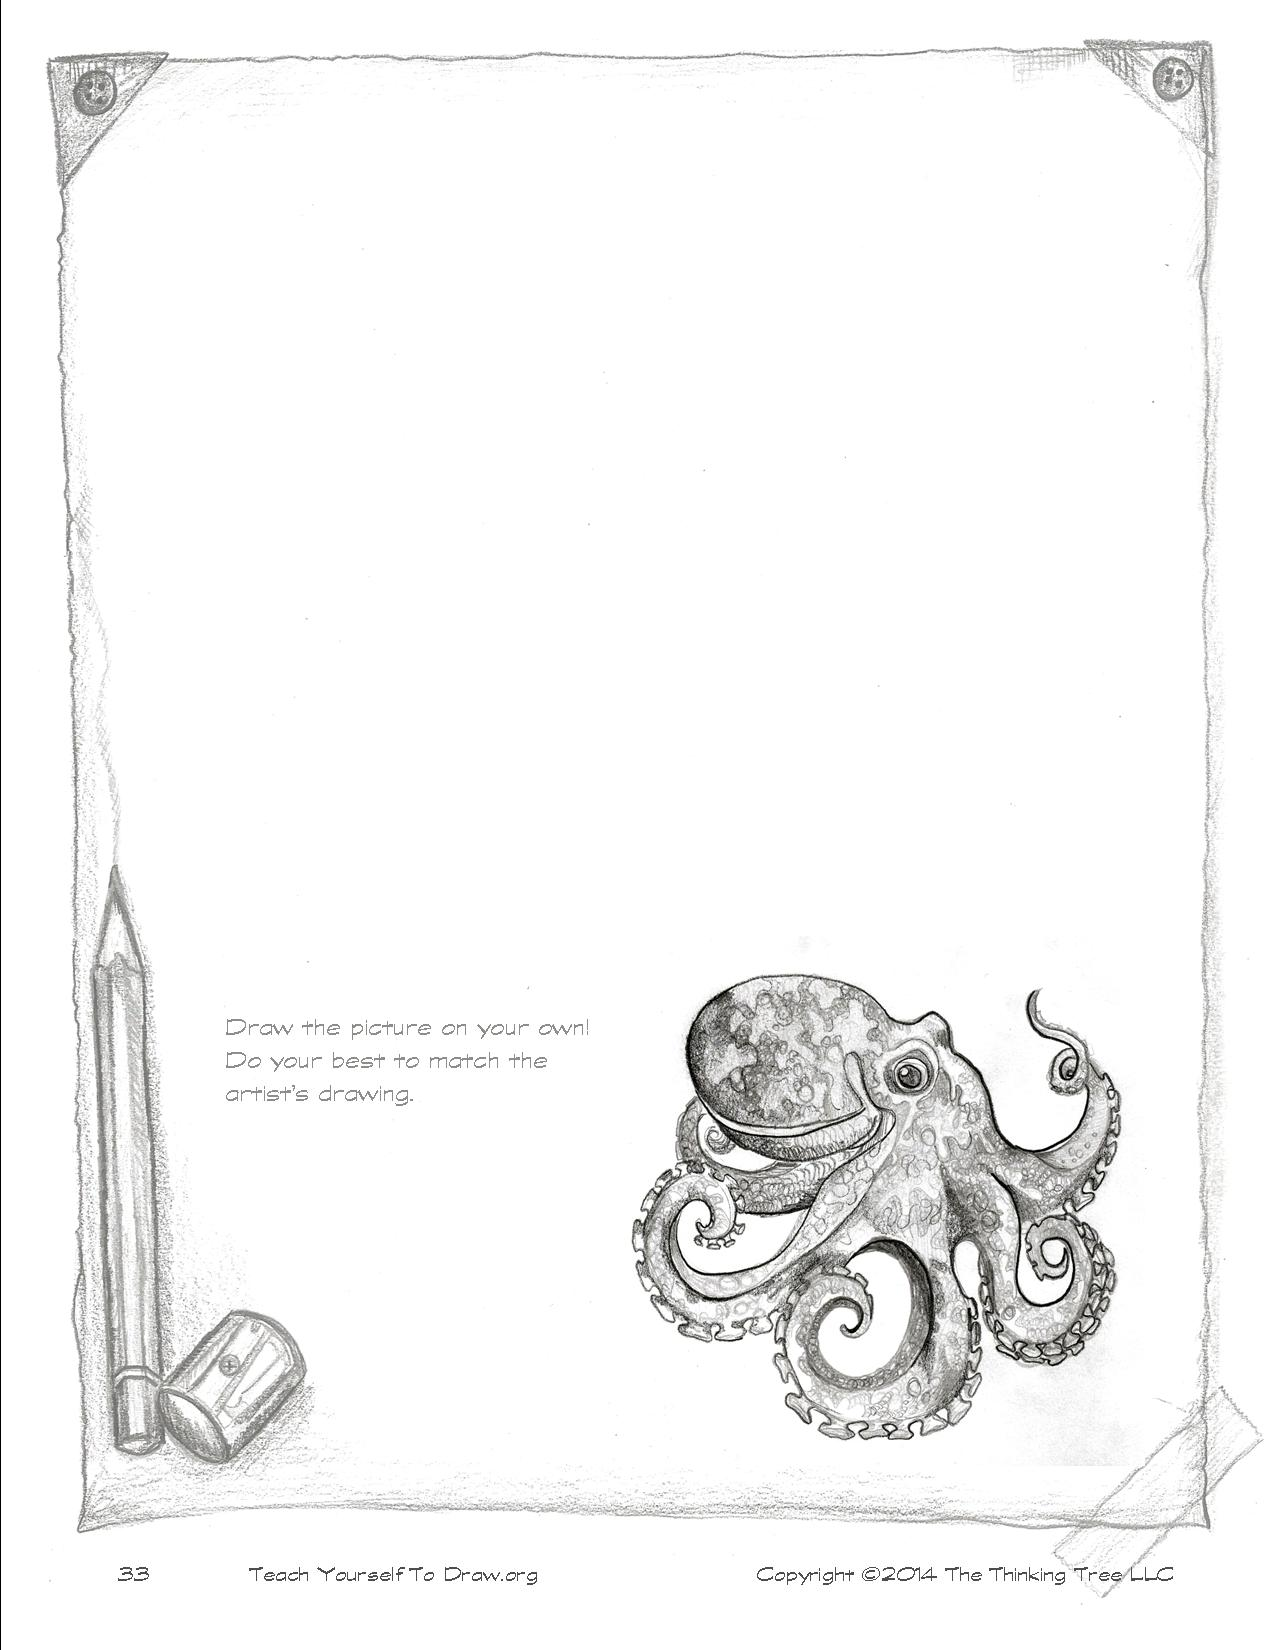 Draw Sea Creatures Page 33.jpg